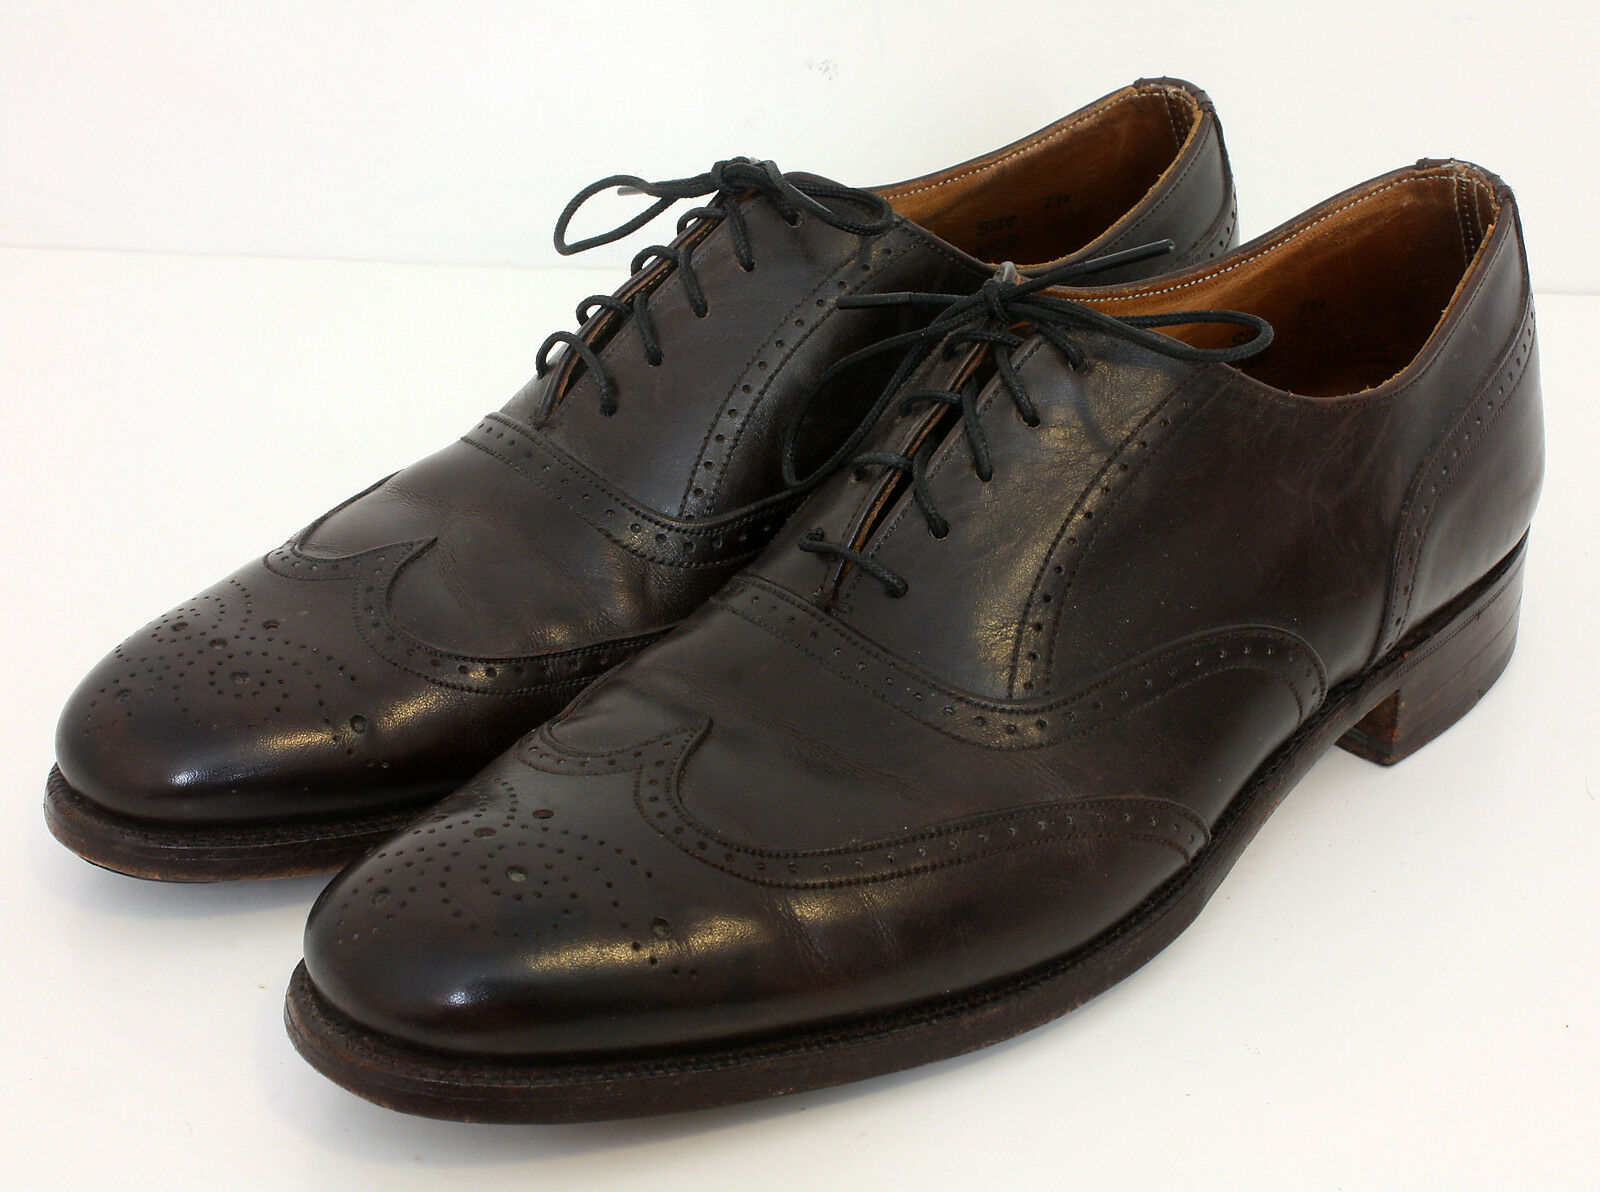 Cheaney X Paul Stuart Braun Leder Wing Tip Dress UK Schuhes Made England Sz 7.5 UK Dress 0434db